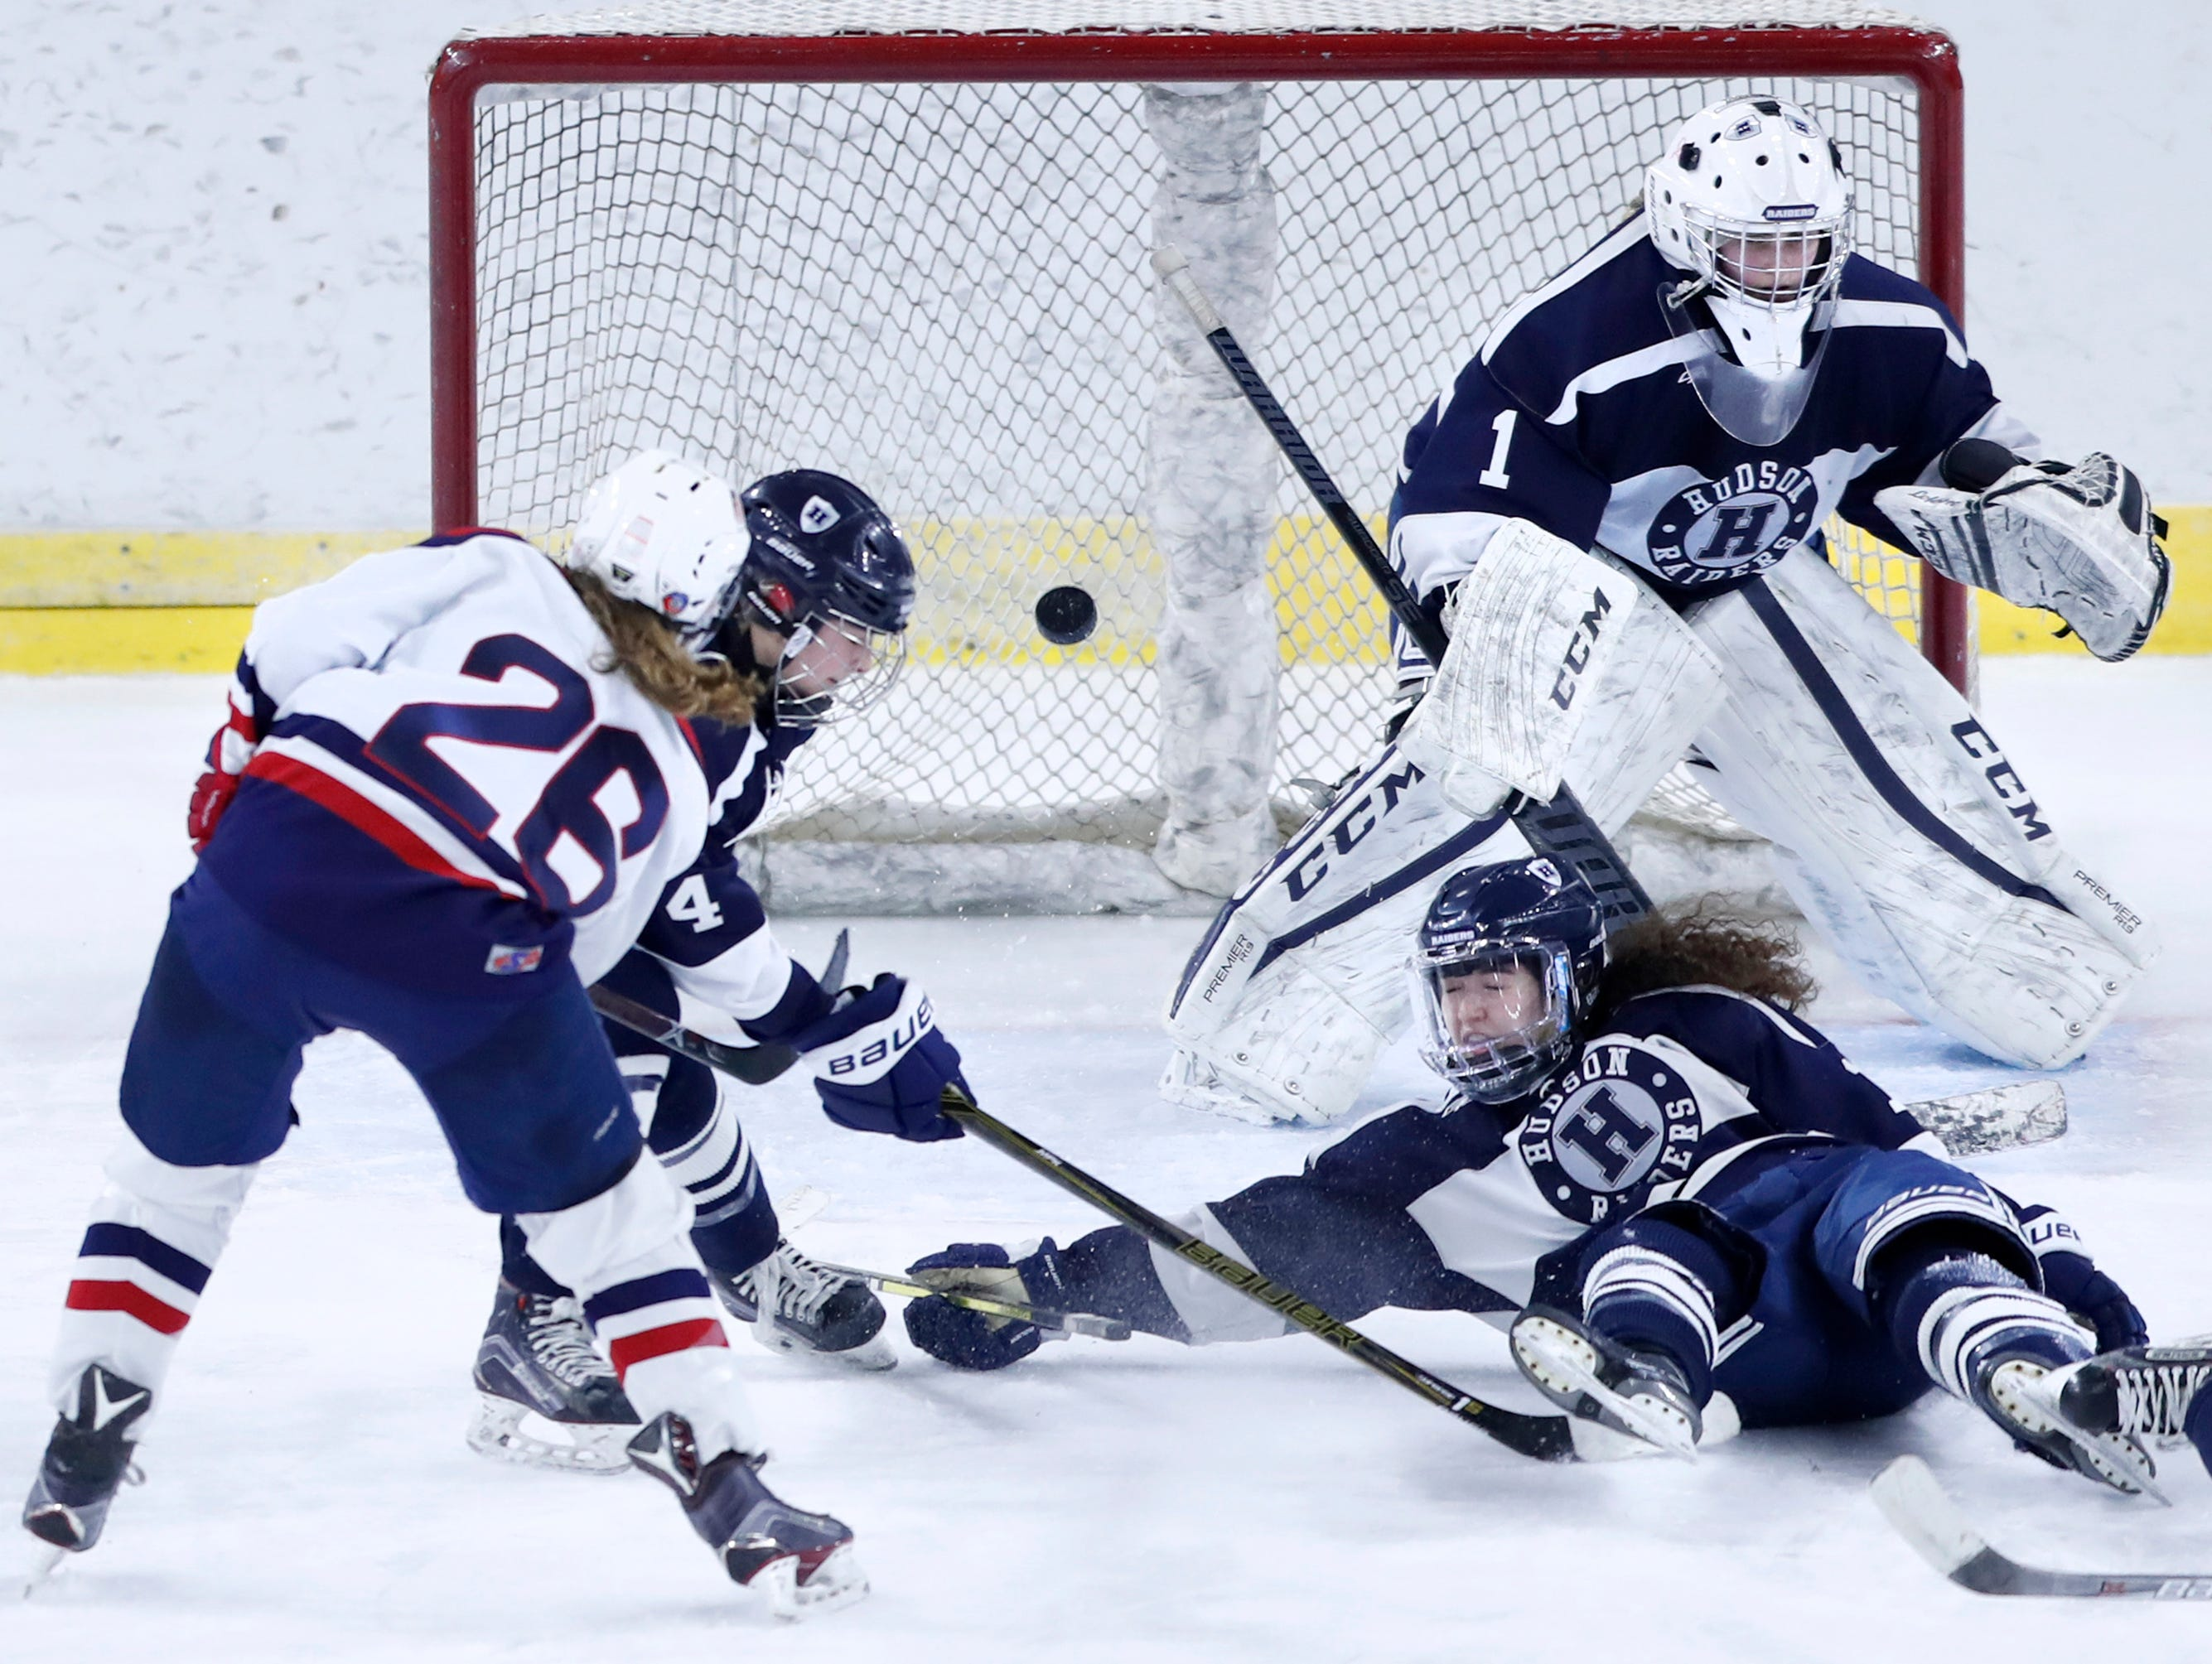 Fox Cities Stars' McKayla Zilisch sends the puck into the back of the net with 11 seconds to play in the third period sending the game into overtime against Hudson during the WIAA State Hockey Tournament championship match Saturday, March 2, 2019, at Veterans Memorial Coliseum in Madison, Wis.